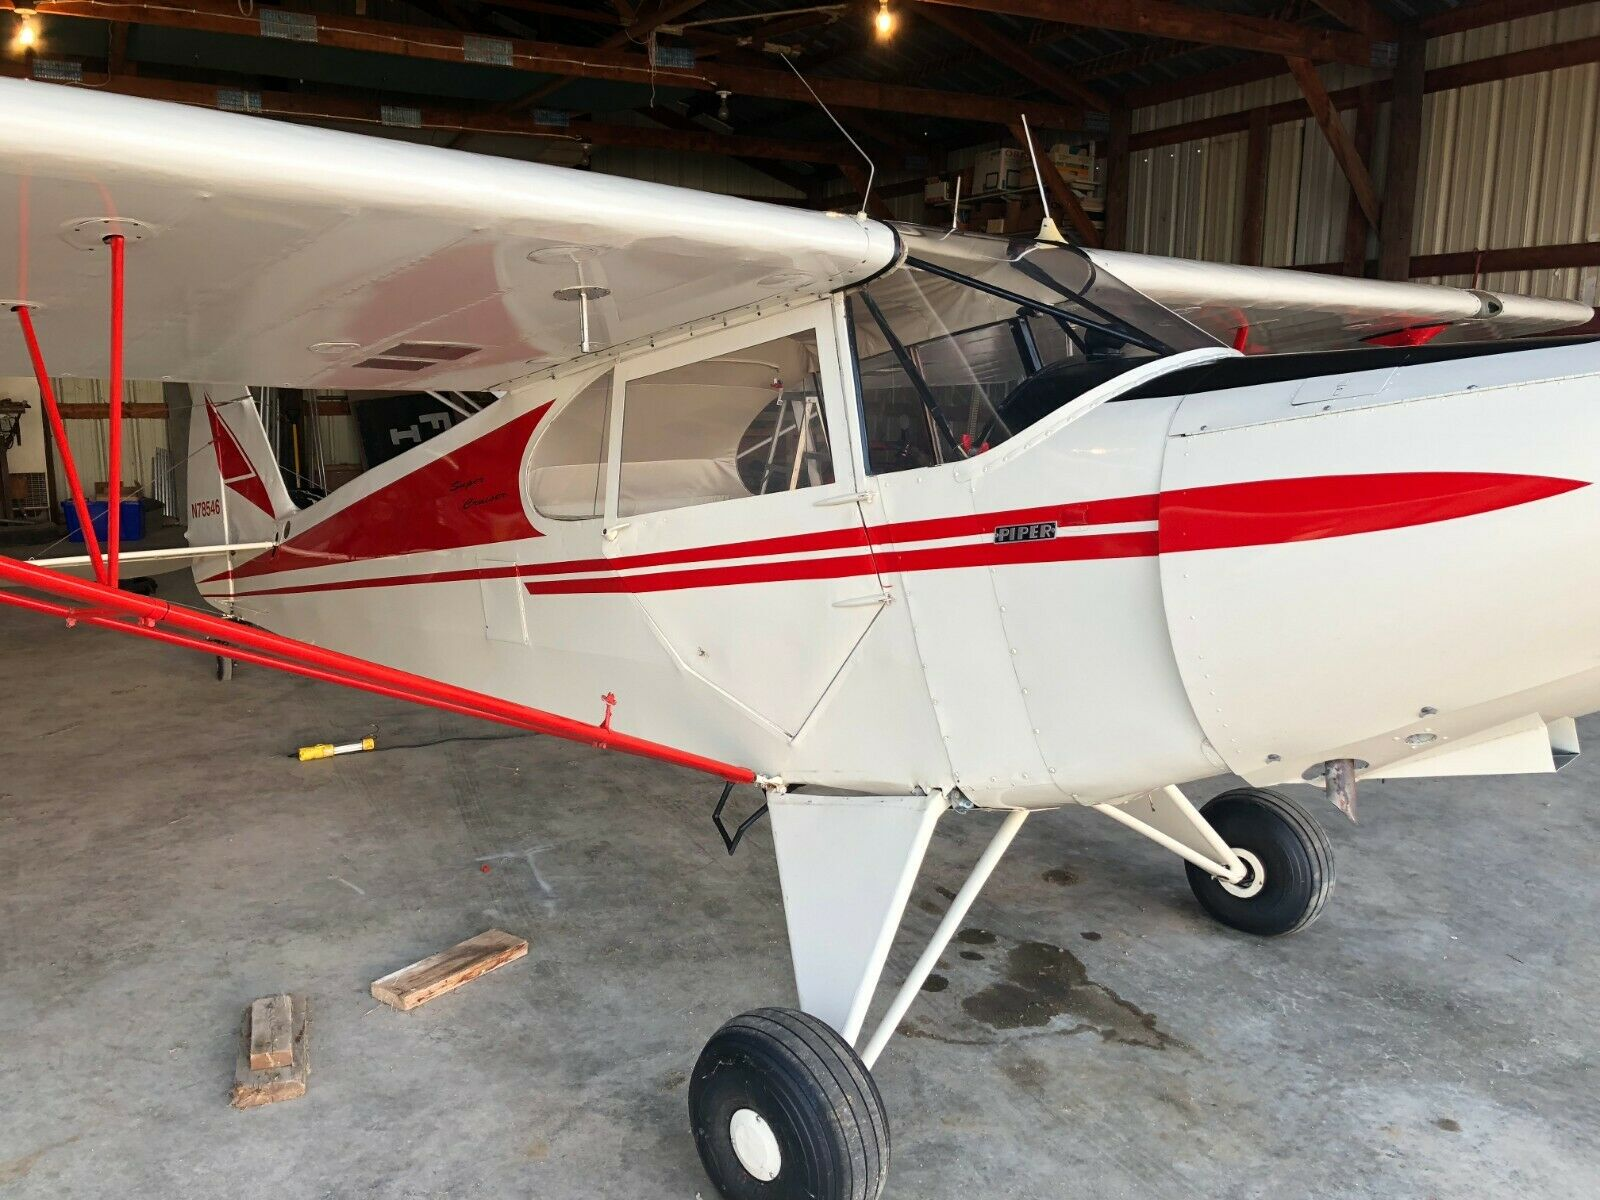 hangared 1947 Piper PA 12 Super Cruiser aircraft for sale